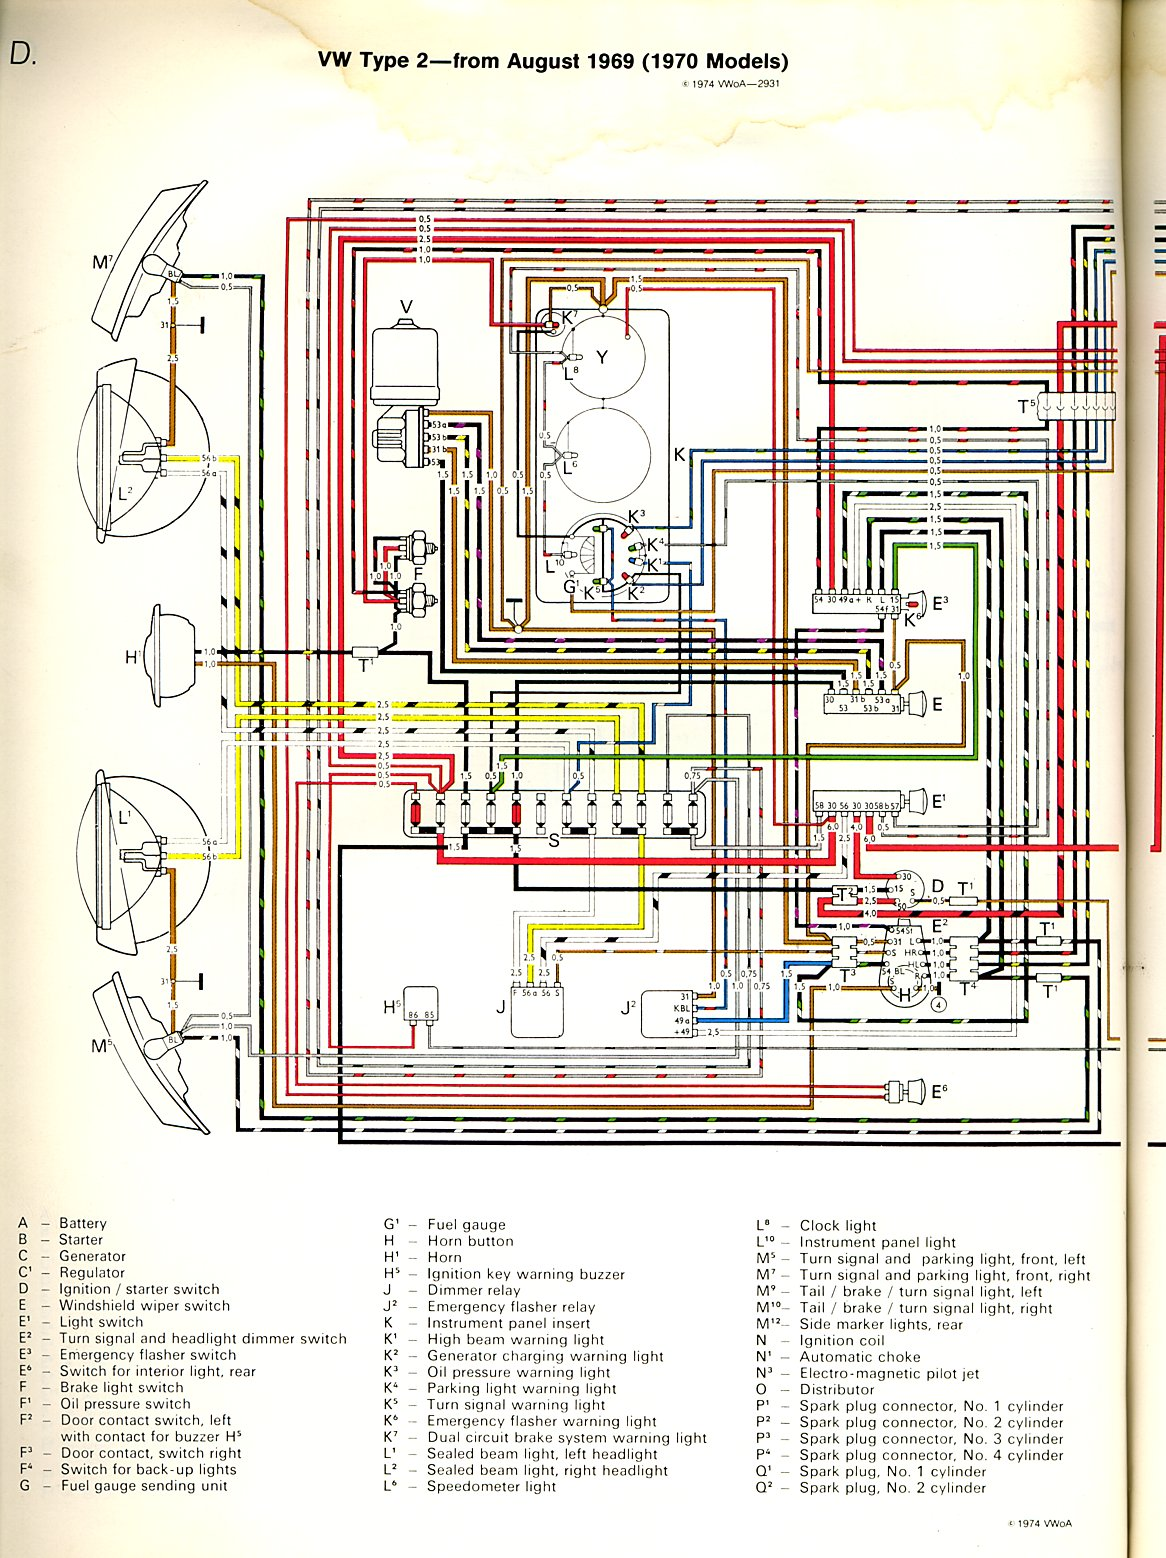 vw bus wiring diagrams detailed schematics diagram rh keyplusrubber com 67  VW Beetle Wiring Diagram 69 VW Wiring Diagram